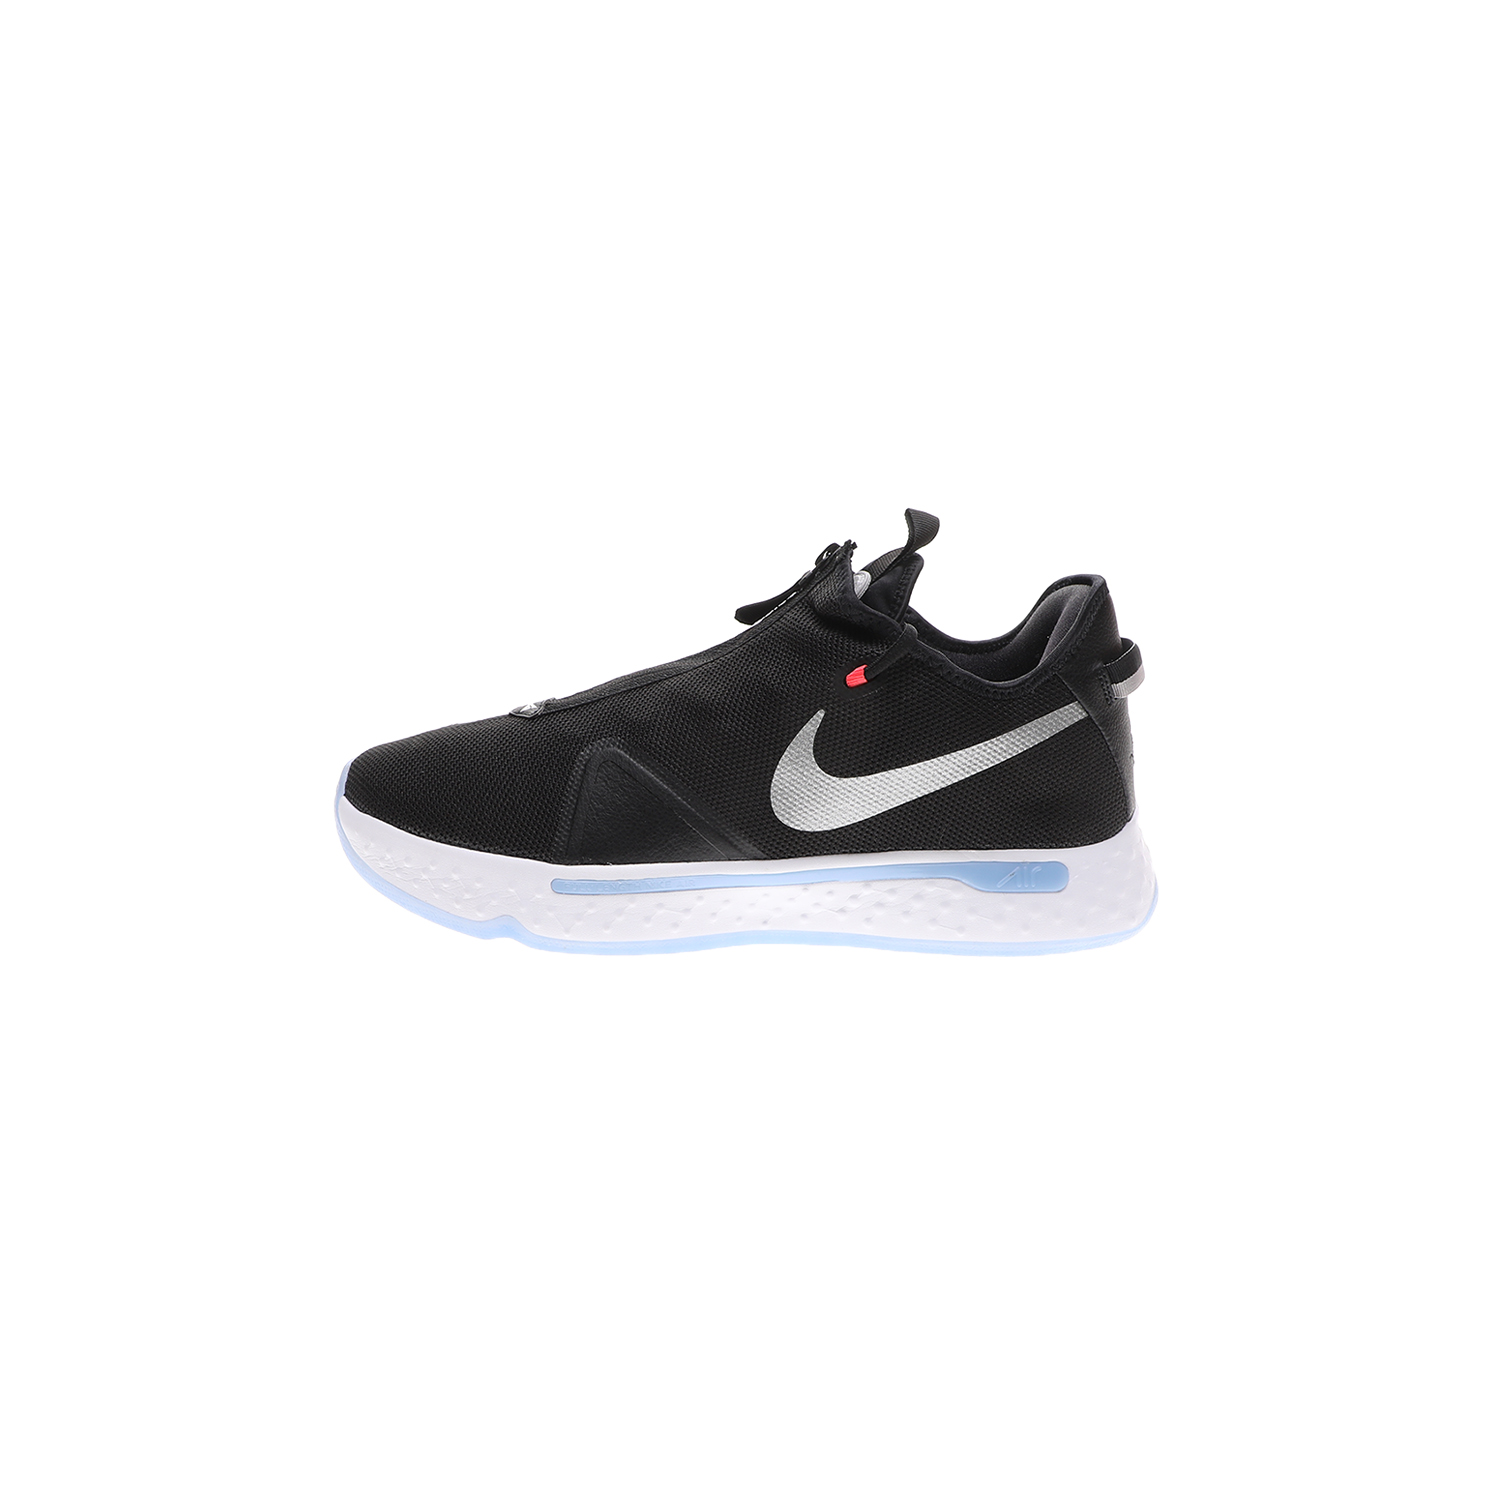 NIKE – Ανδρικά παπούτσια basketball NIKE PG 4 μαύρα λευκά